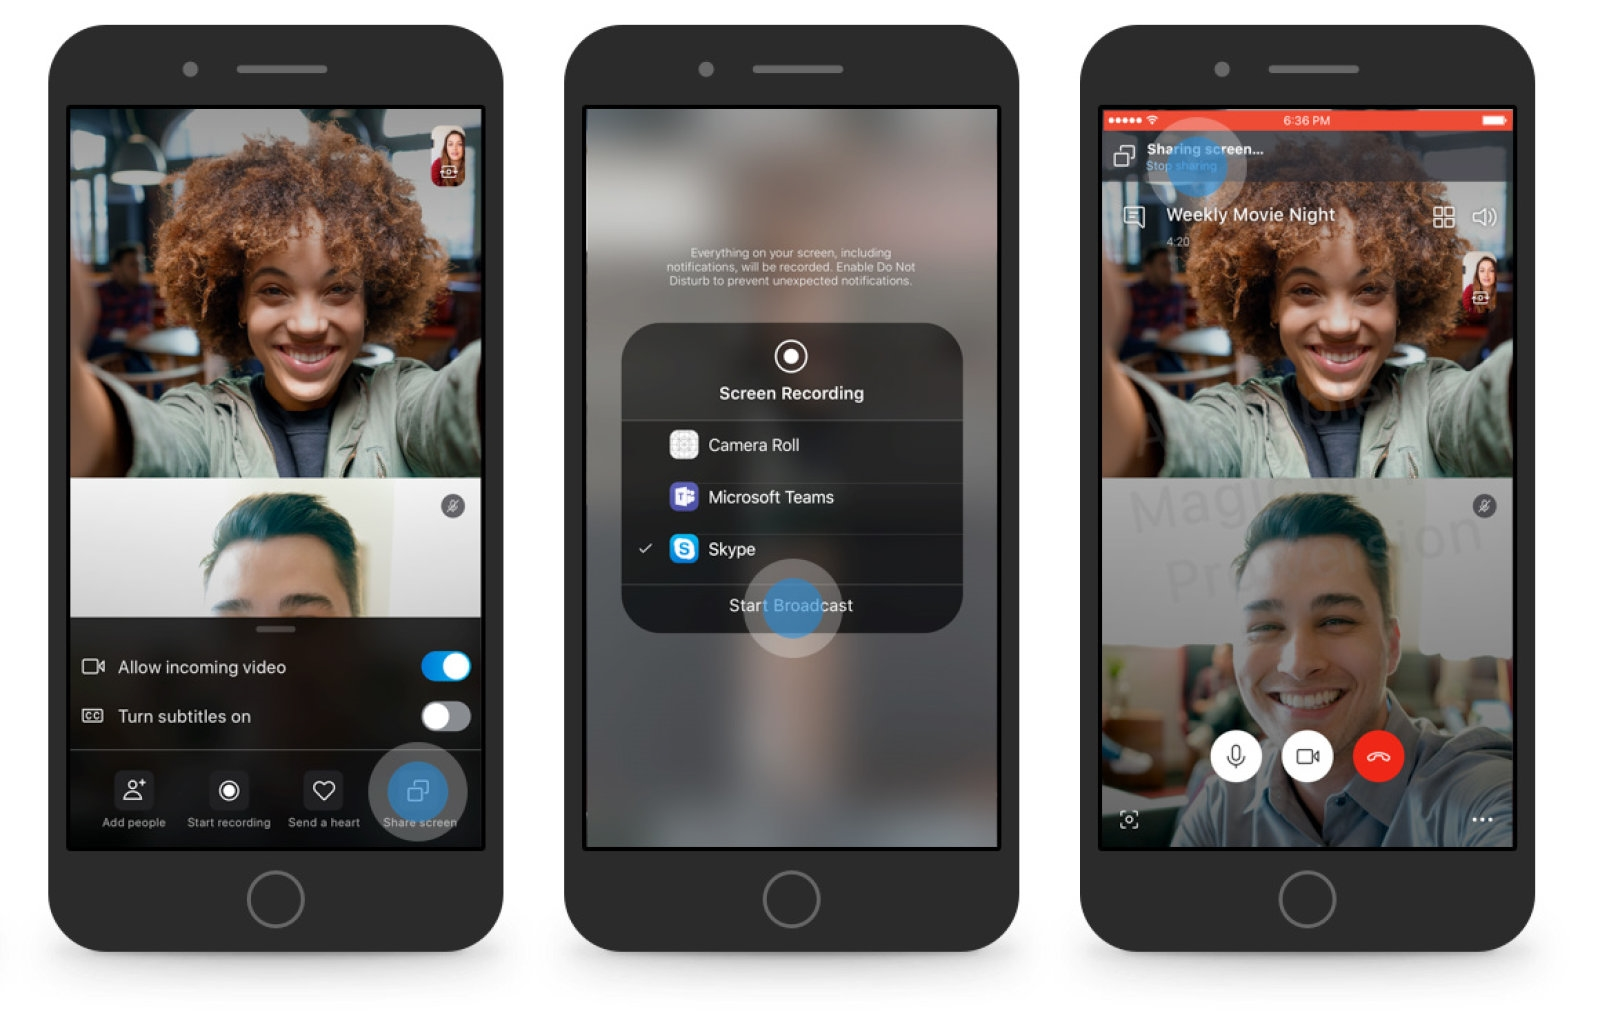 Skype adds screen sharing to its iOS and Android apps | DeviceDaily.com